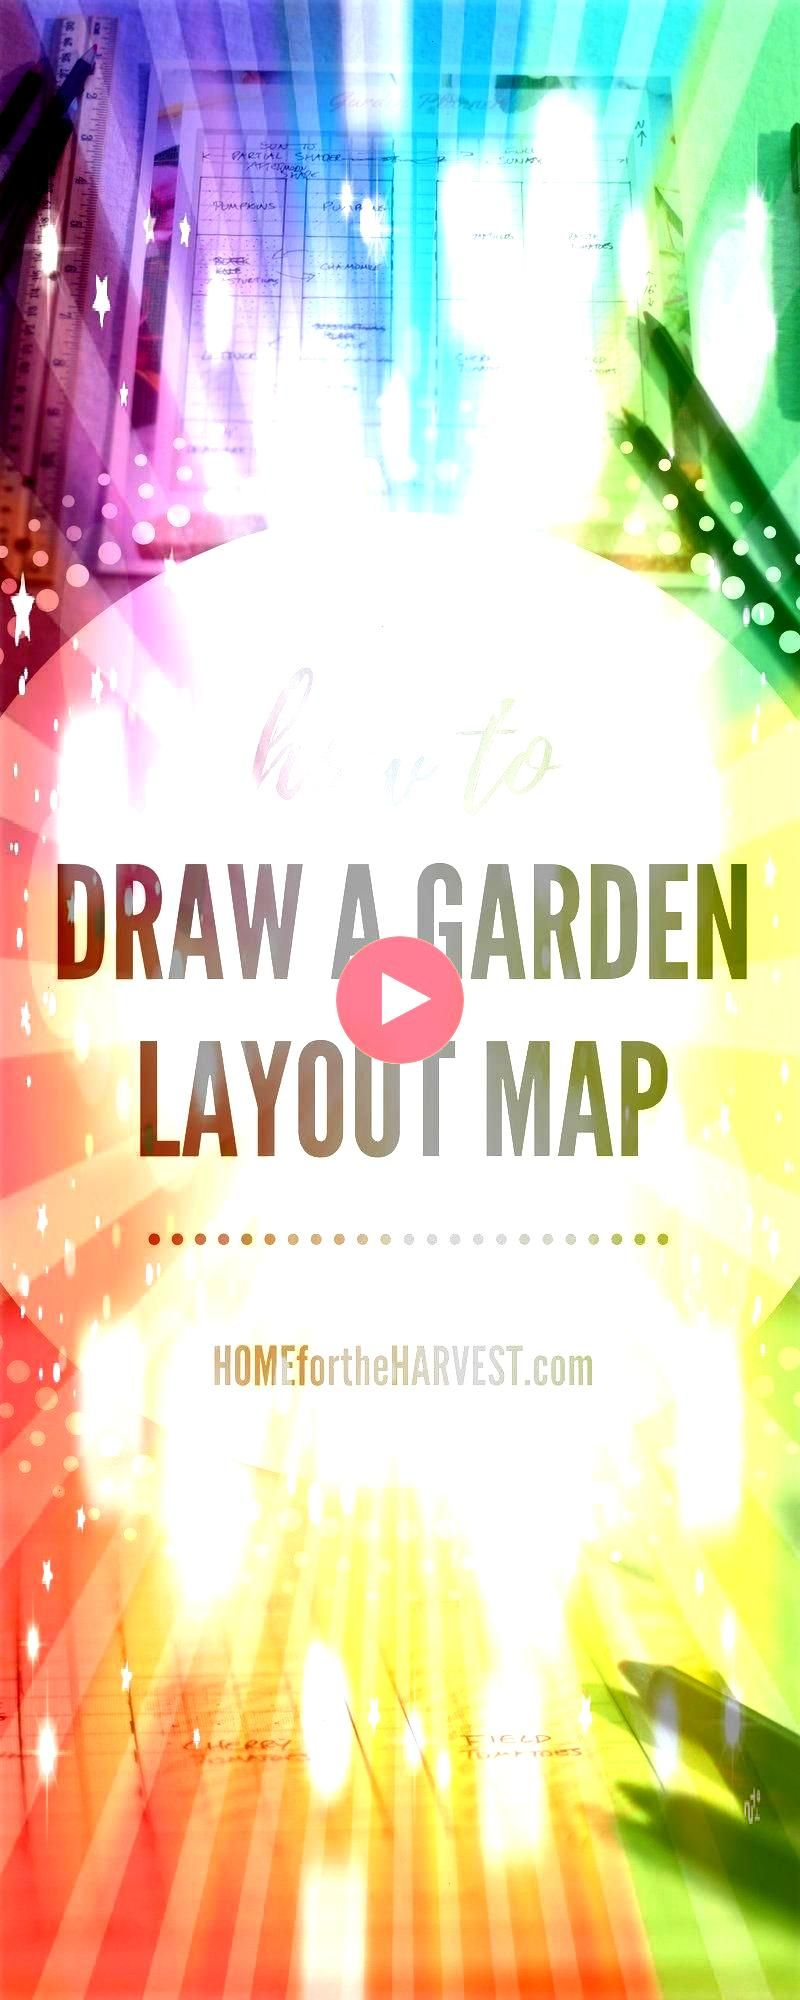 Draw a Garden Layout Map  Home for the HarvestHow to Draw a Garden Layout Map  Home for the Harvest Free Garden Plan Printable Planner Seed Order Seed Inventory Square Fo...